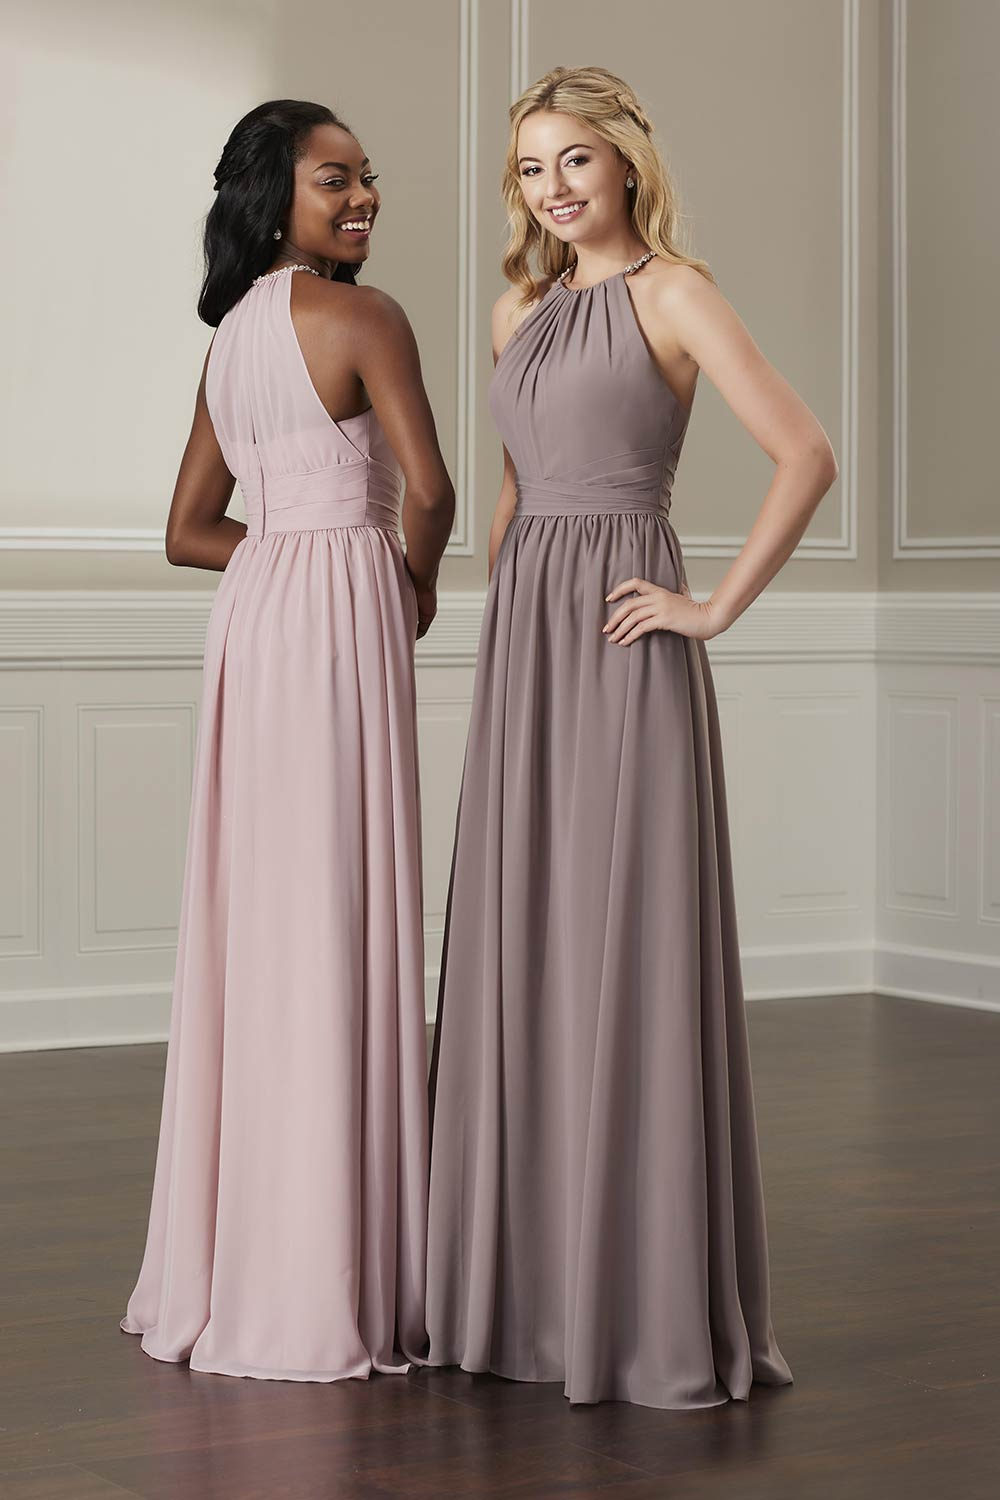 bridesmaid-dresses-jacquelin-bridals-canada-26828